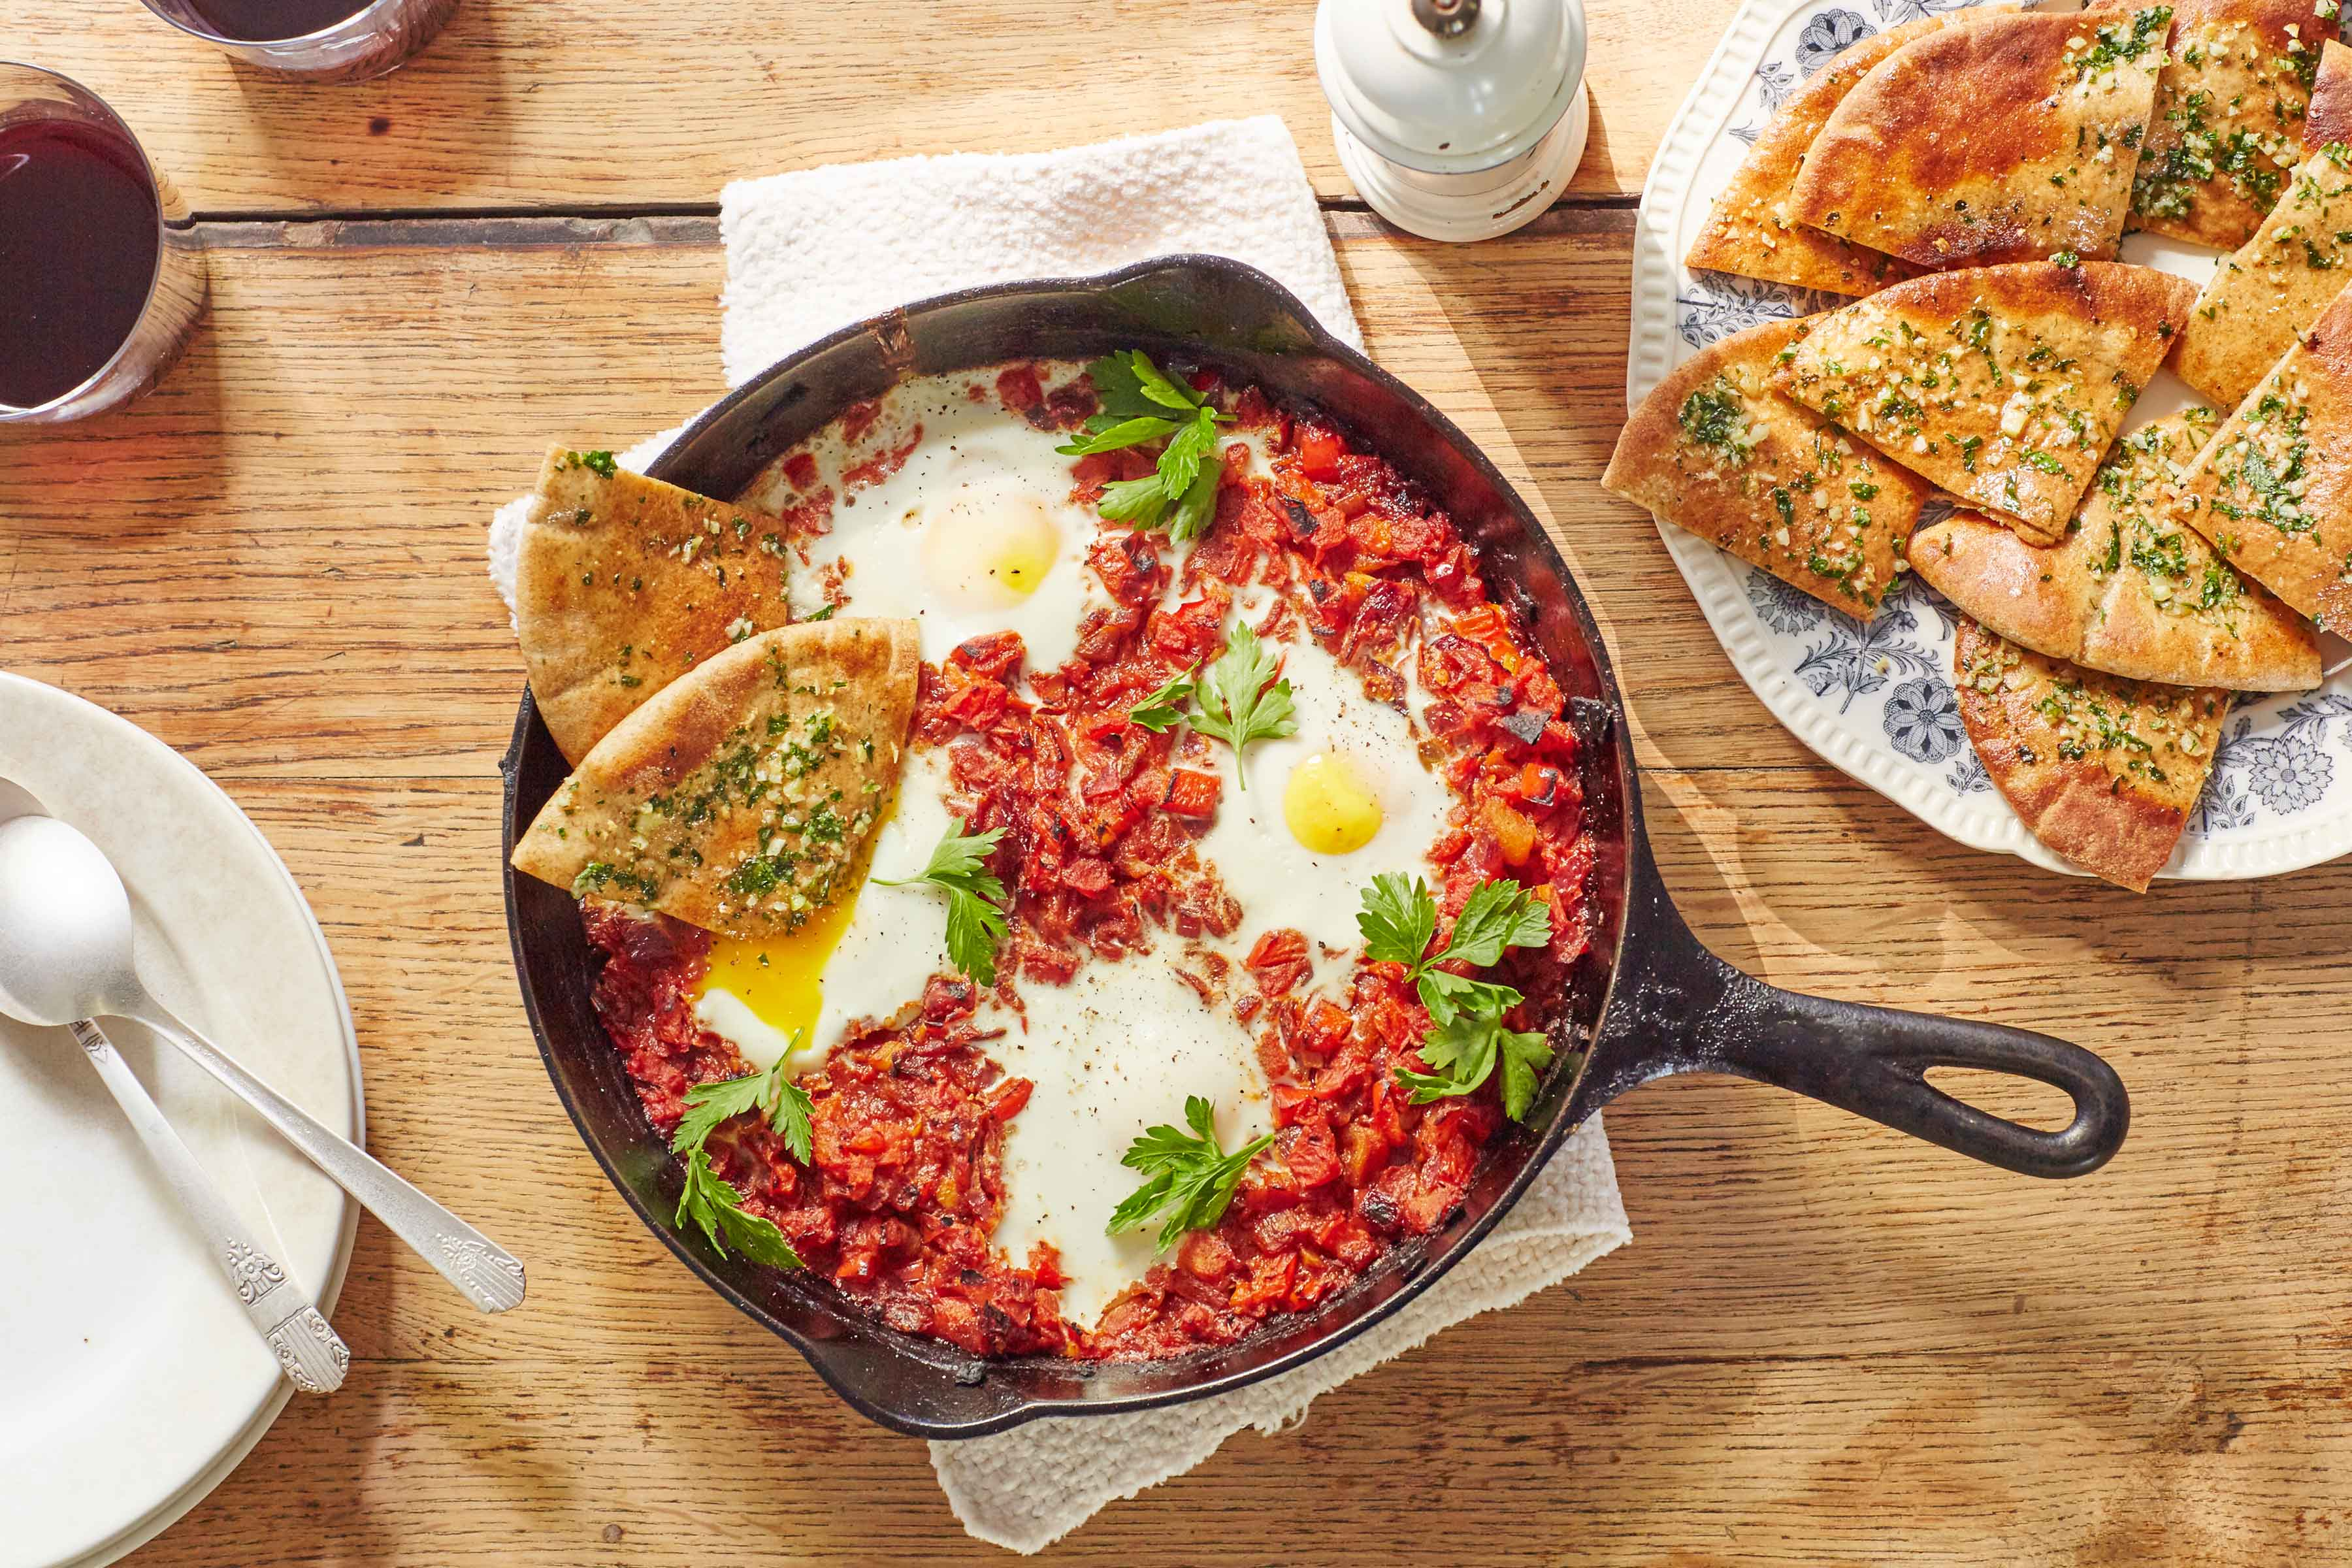 Shakshuka, a Middle Eastern tomato and egg dish, baked in a cast iron skillet with a plate of toasted pita cut in triangles and topped with herbs on the side